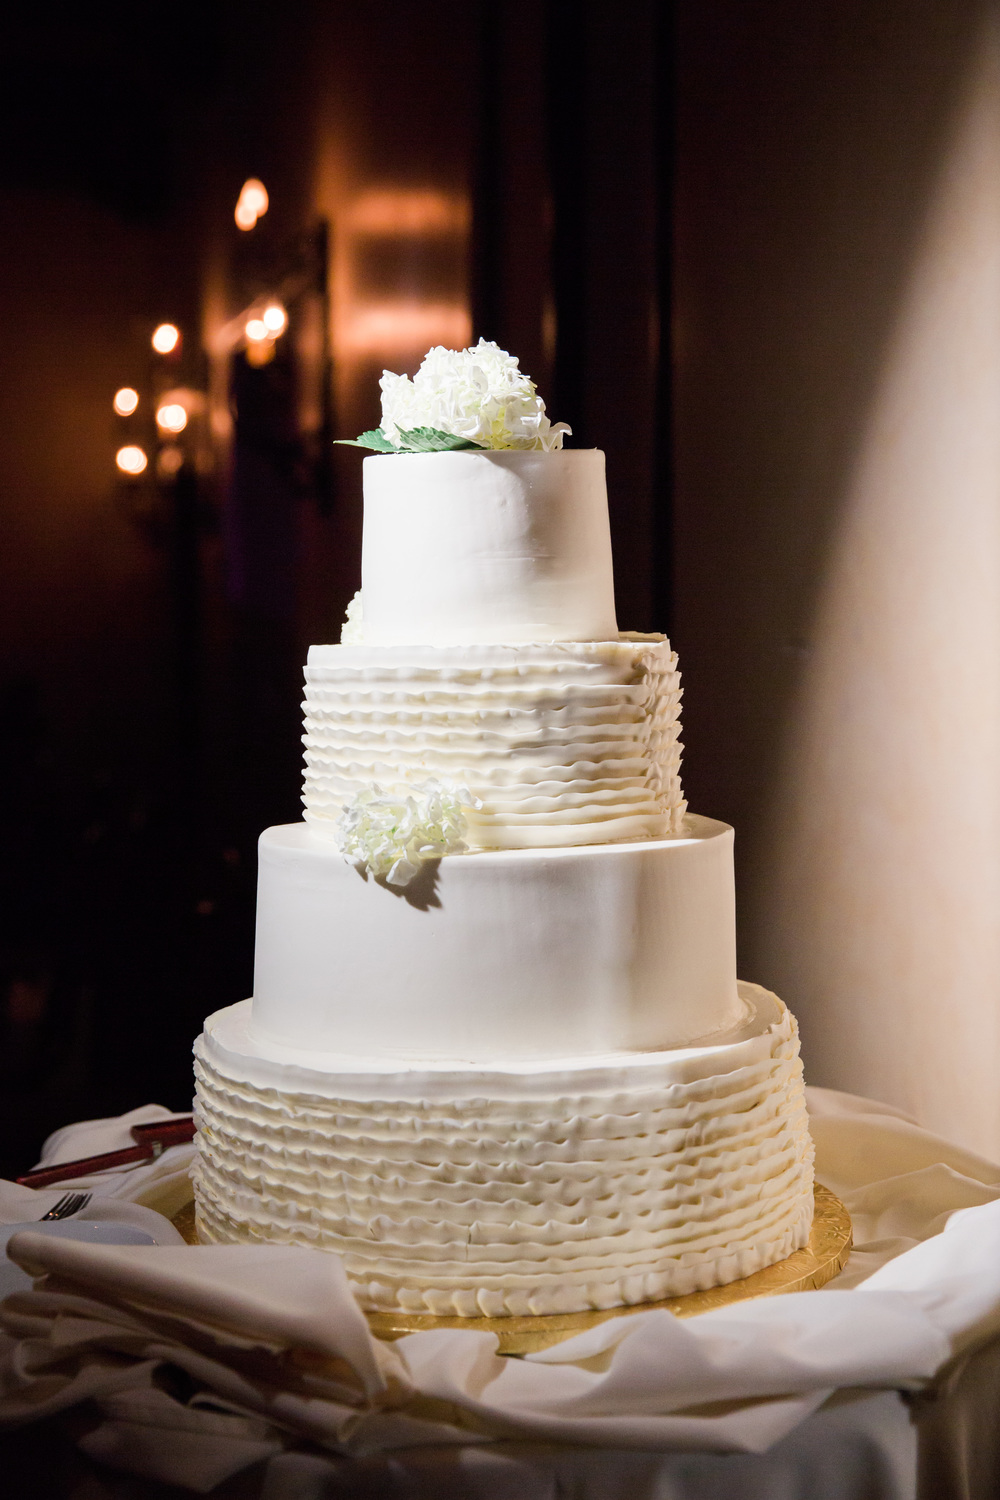 Gorgeous white wedding cake with ruffles by Village Bakehouse in Tucson